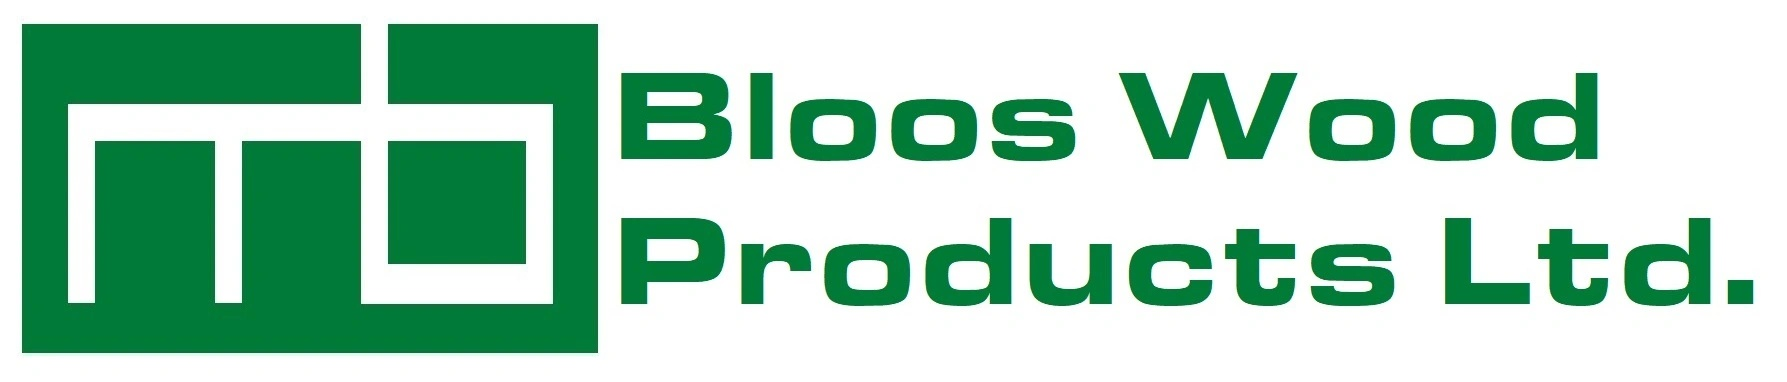 Bloos Wood Products